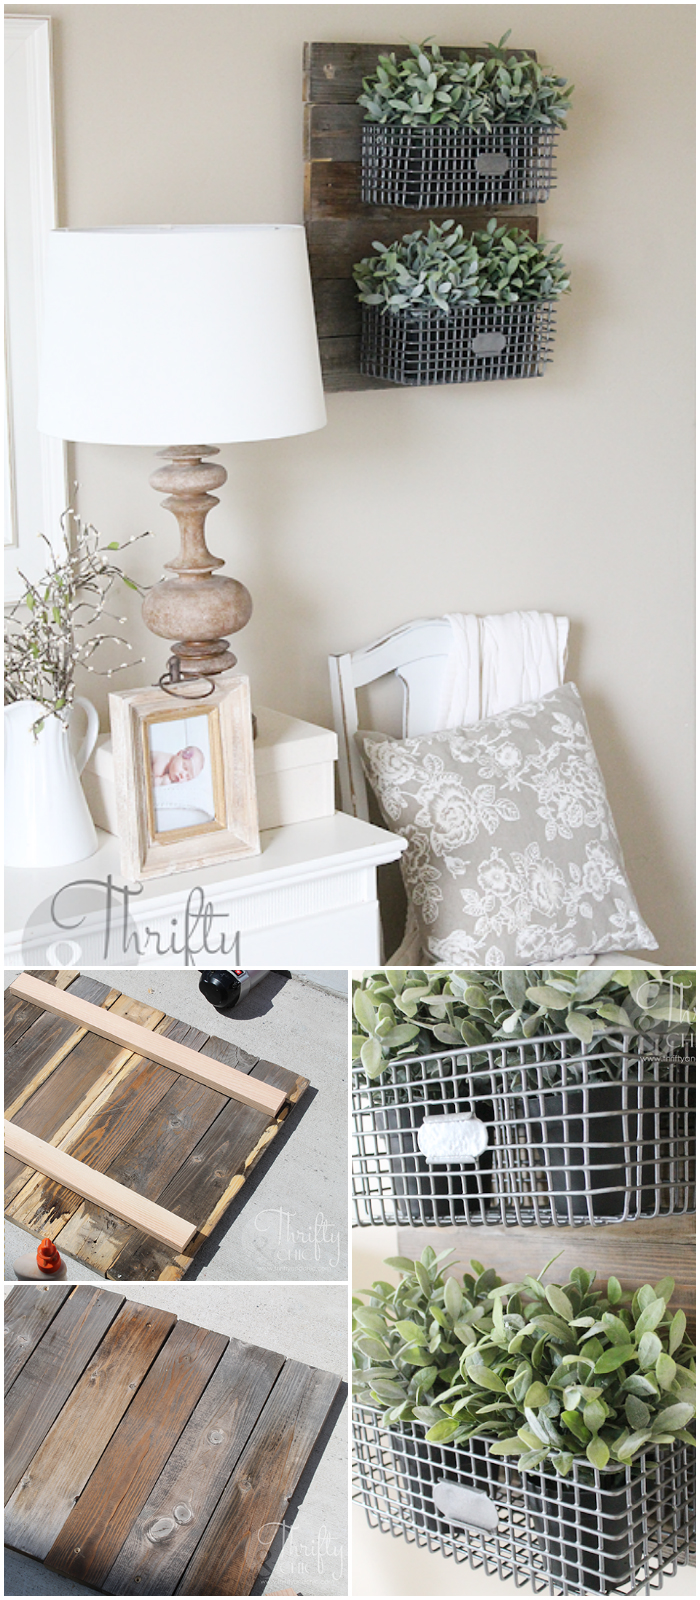 DIY Farmhouse Style Hanging Wire Baskets